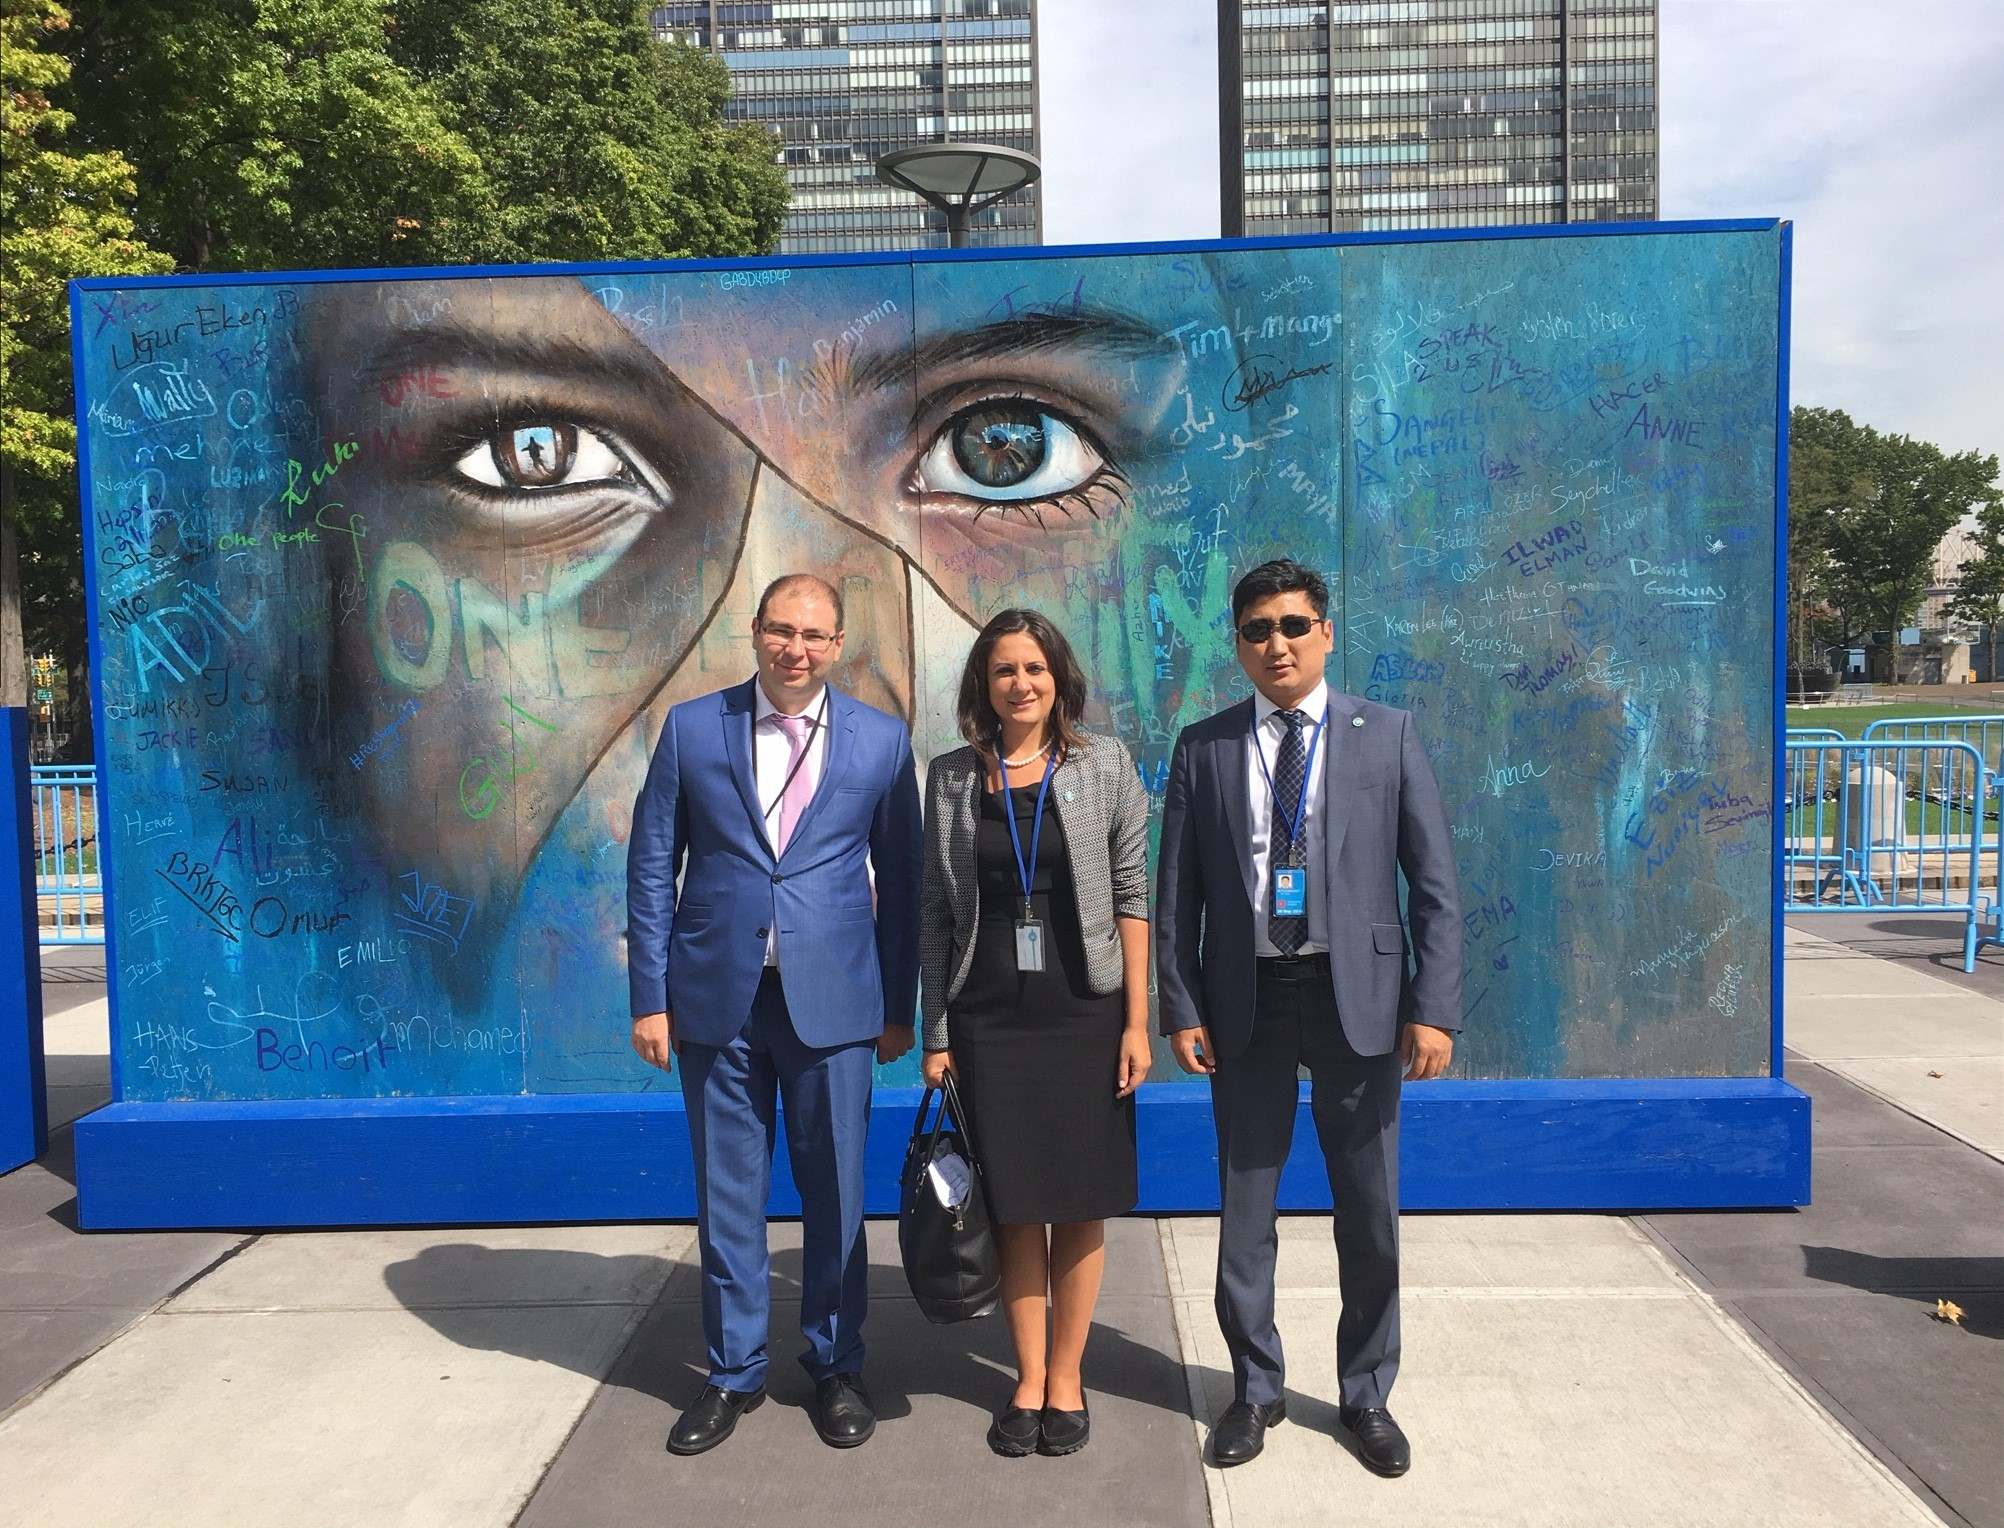 Ahmad Alhendawi project directors of the turkic council had a bilateral